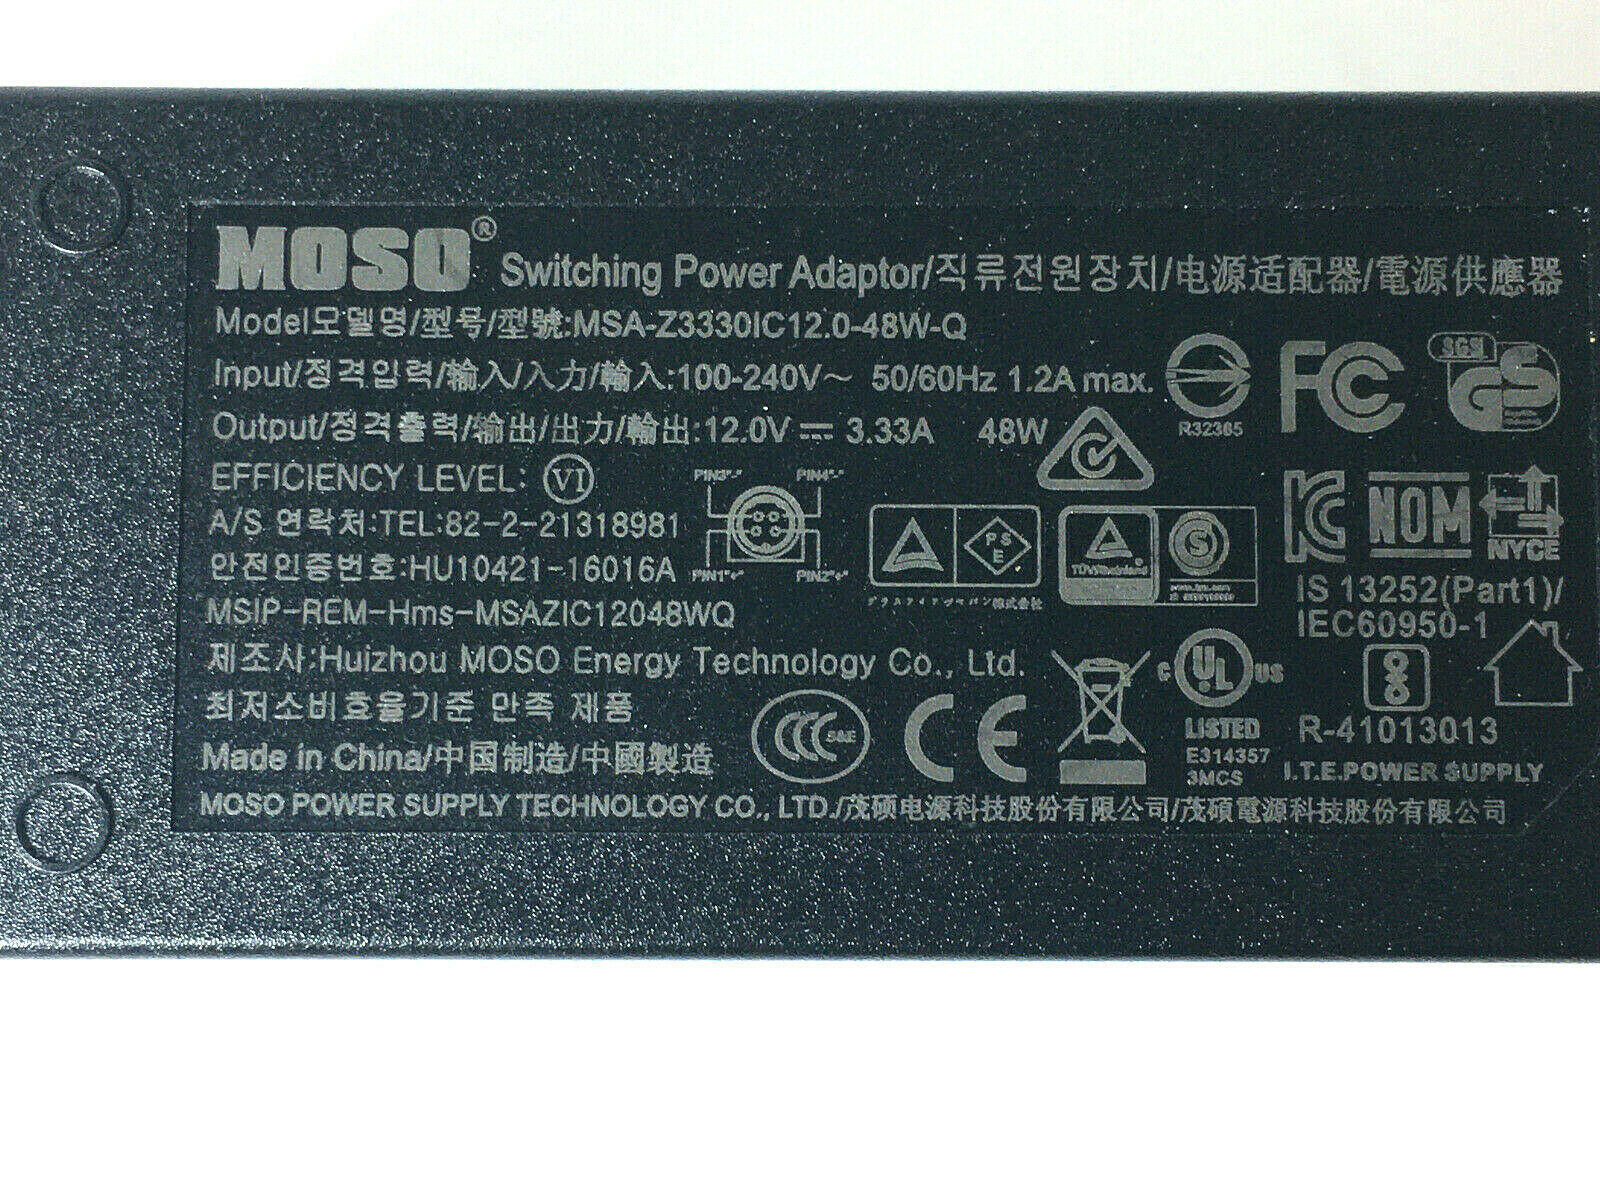 Primary image for 4 Pin 48W Power Supply MOSO MSA-Z3330IC12.0-48W-Q for Hikvision Video Recorder